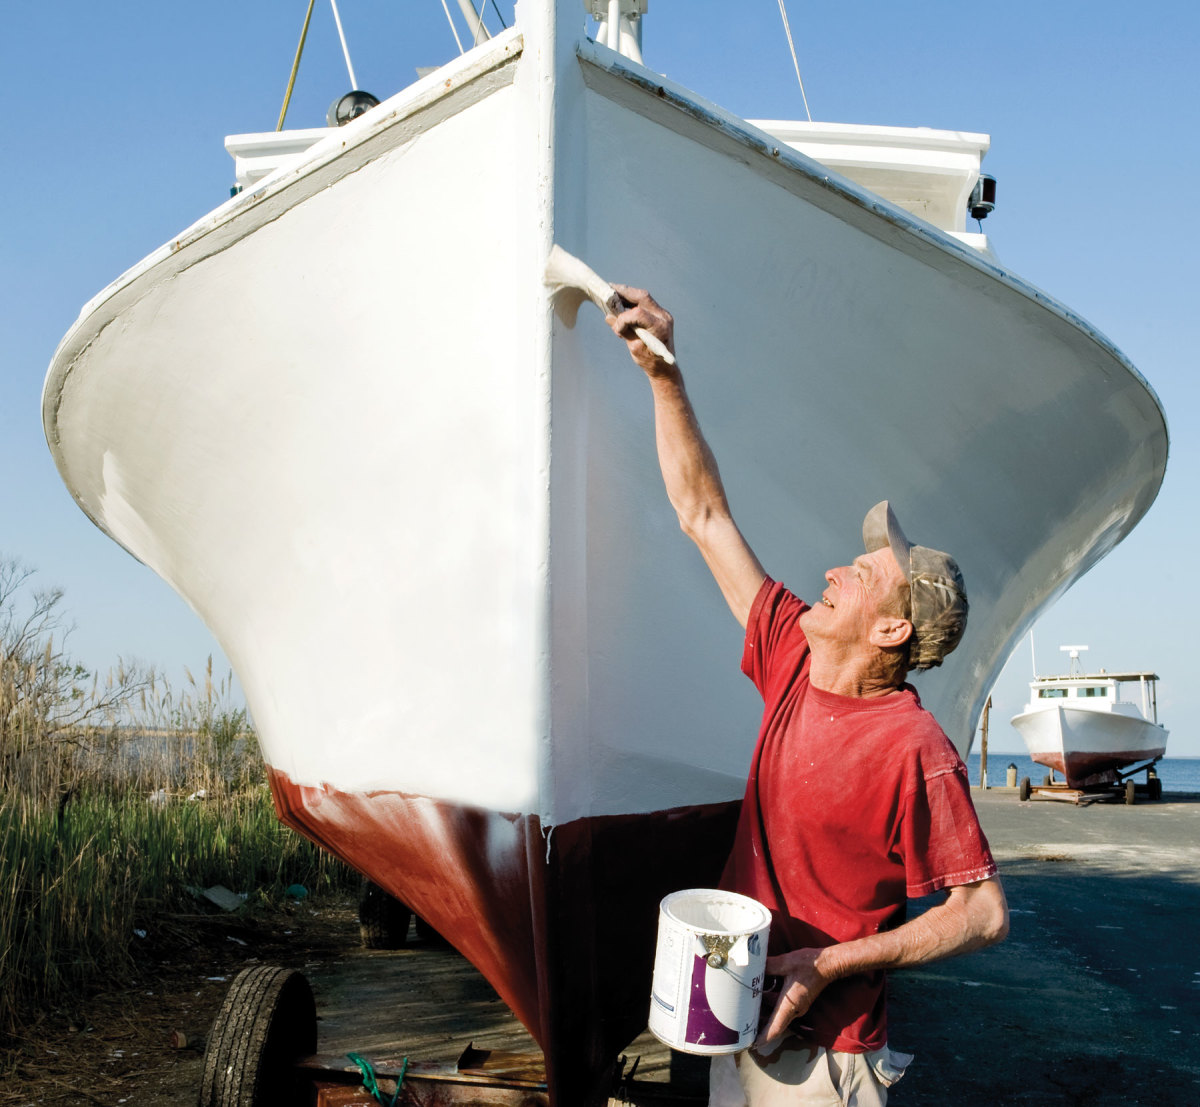 Mark Holitick paints Workaholic before the start of crabbing season.